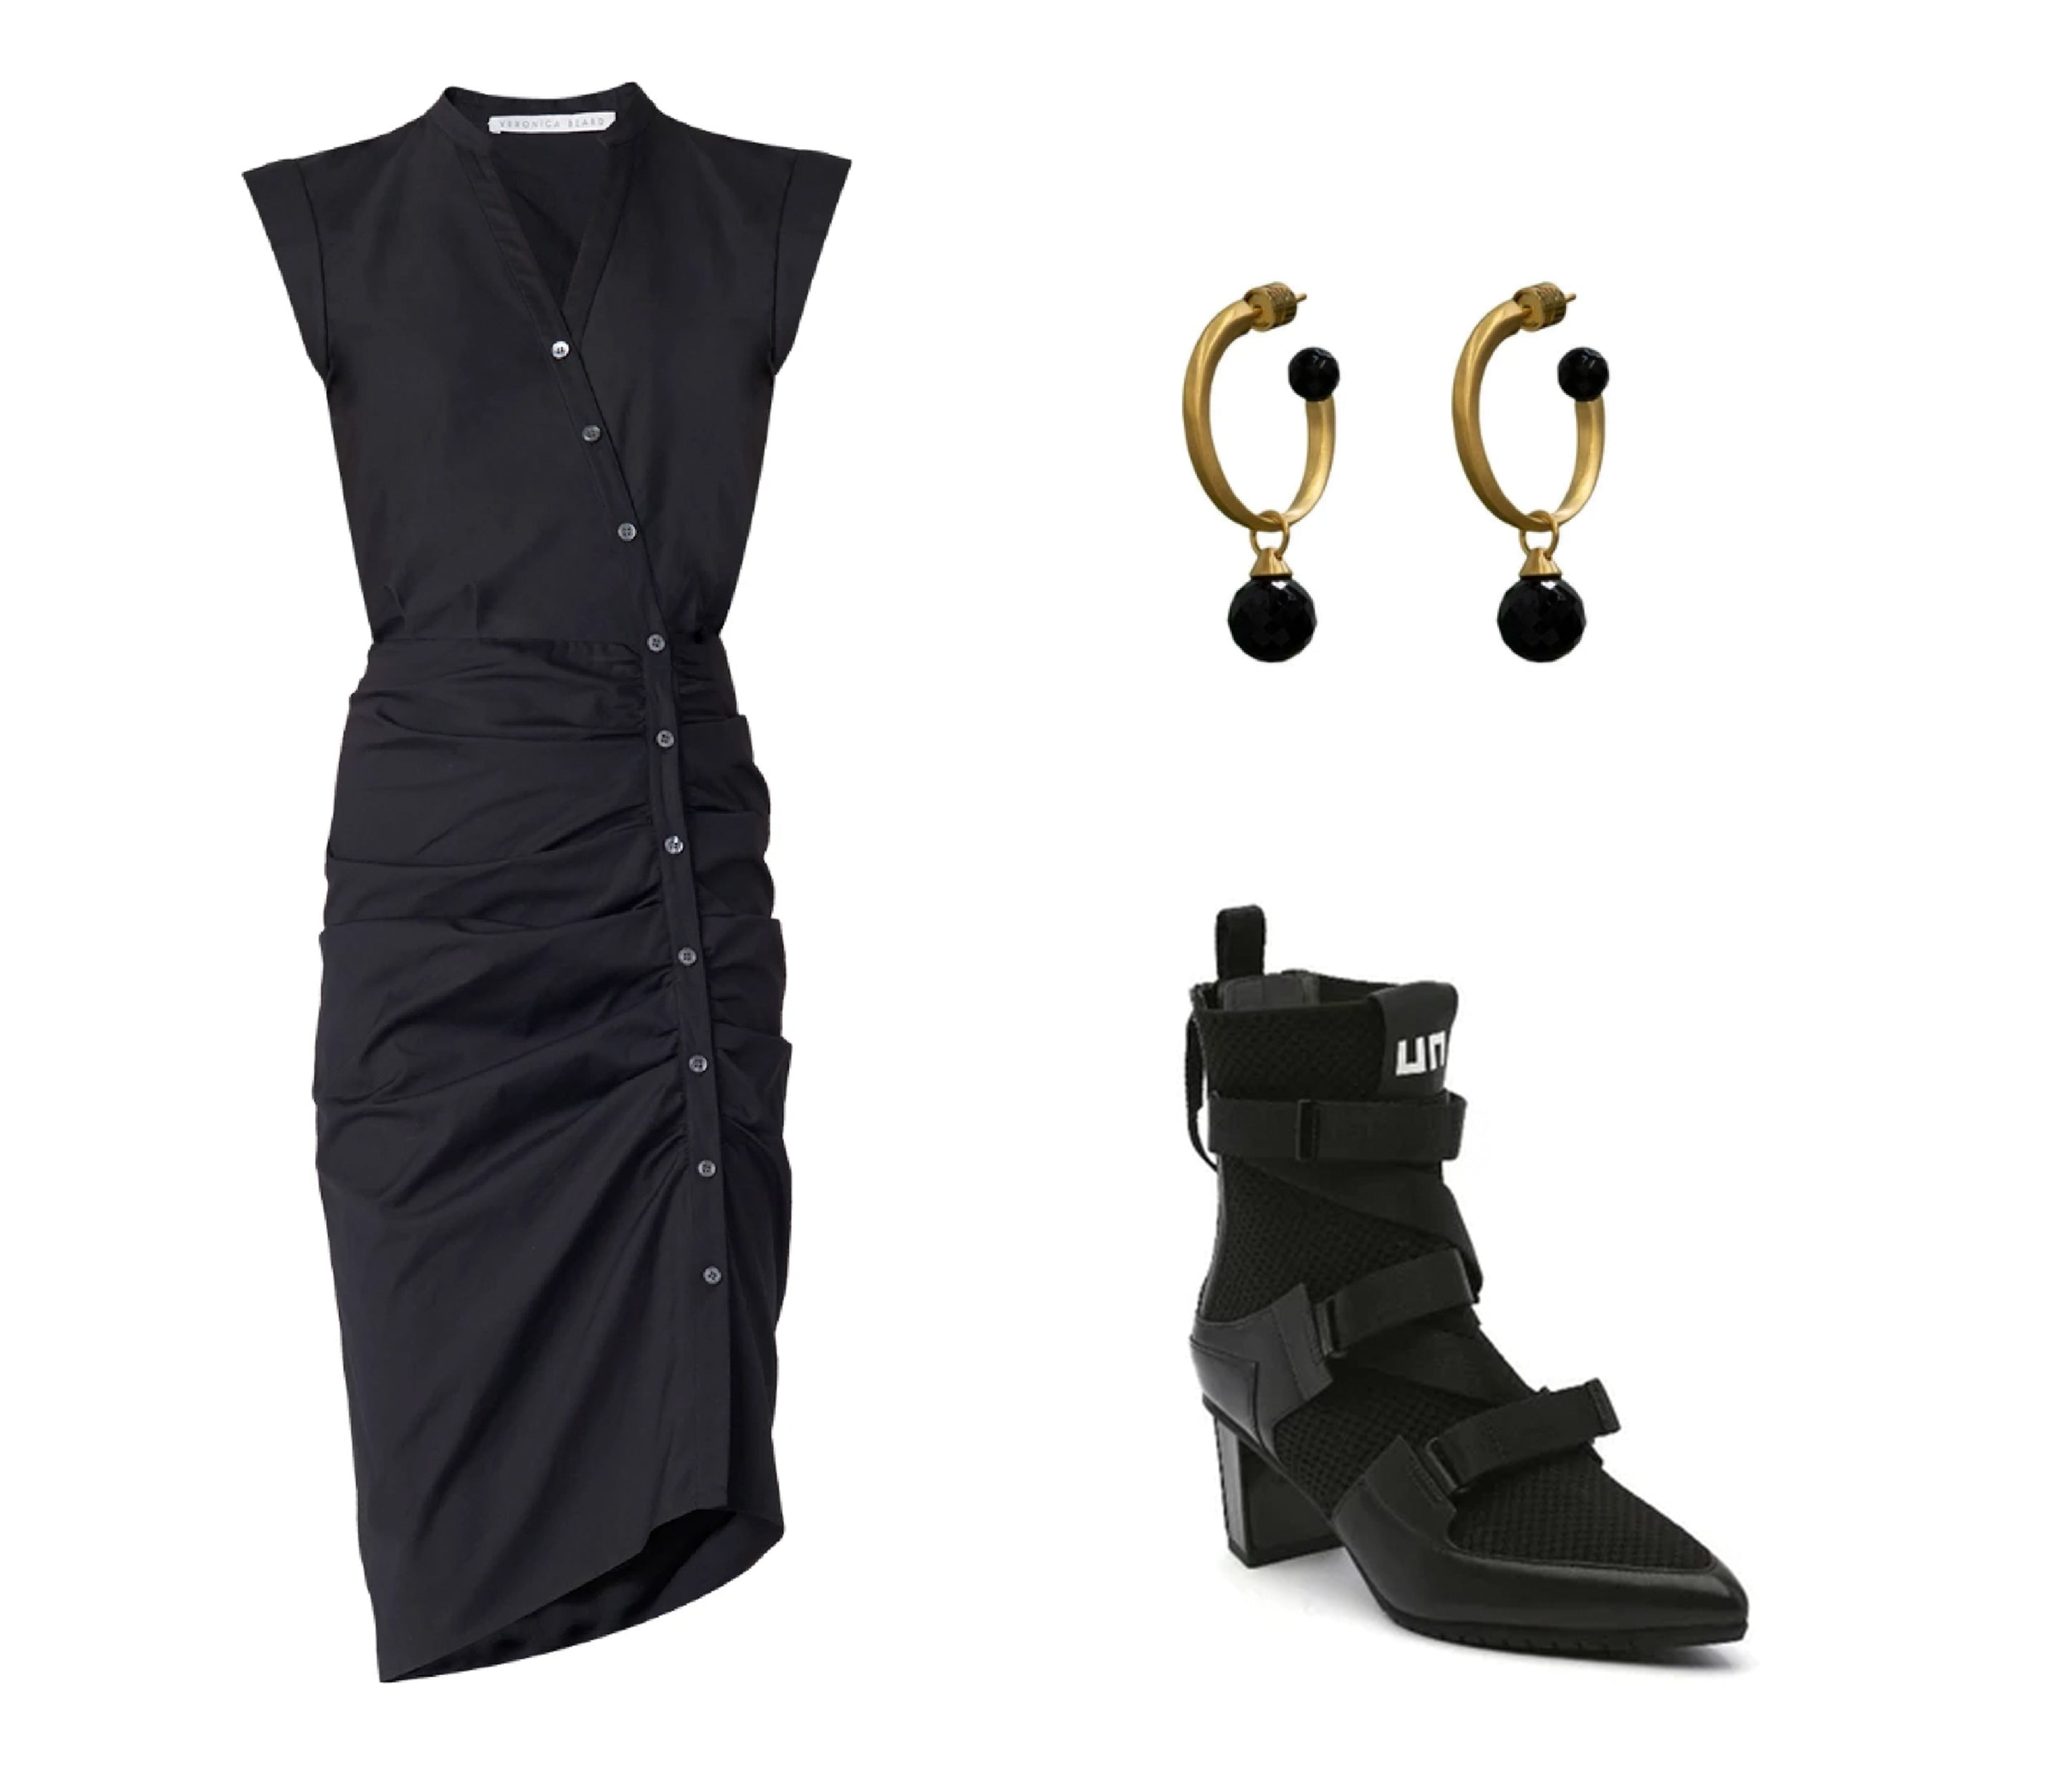 ruched_shirt_dress  onyx_hoop  sport_mid